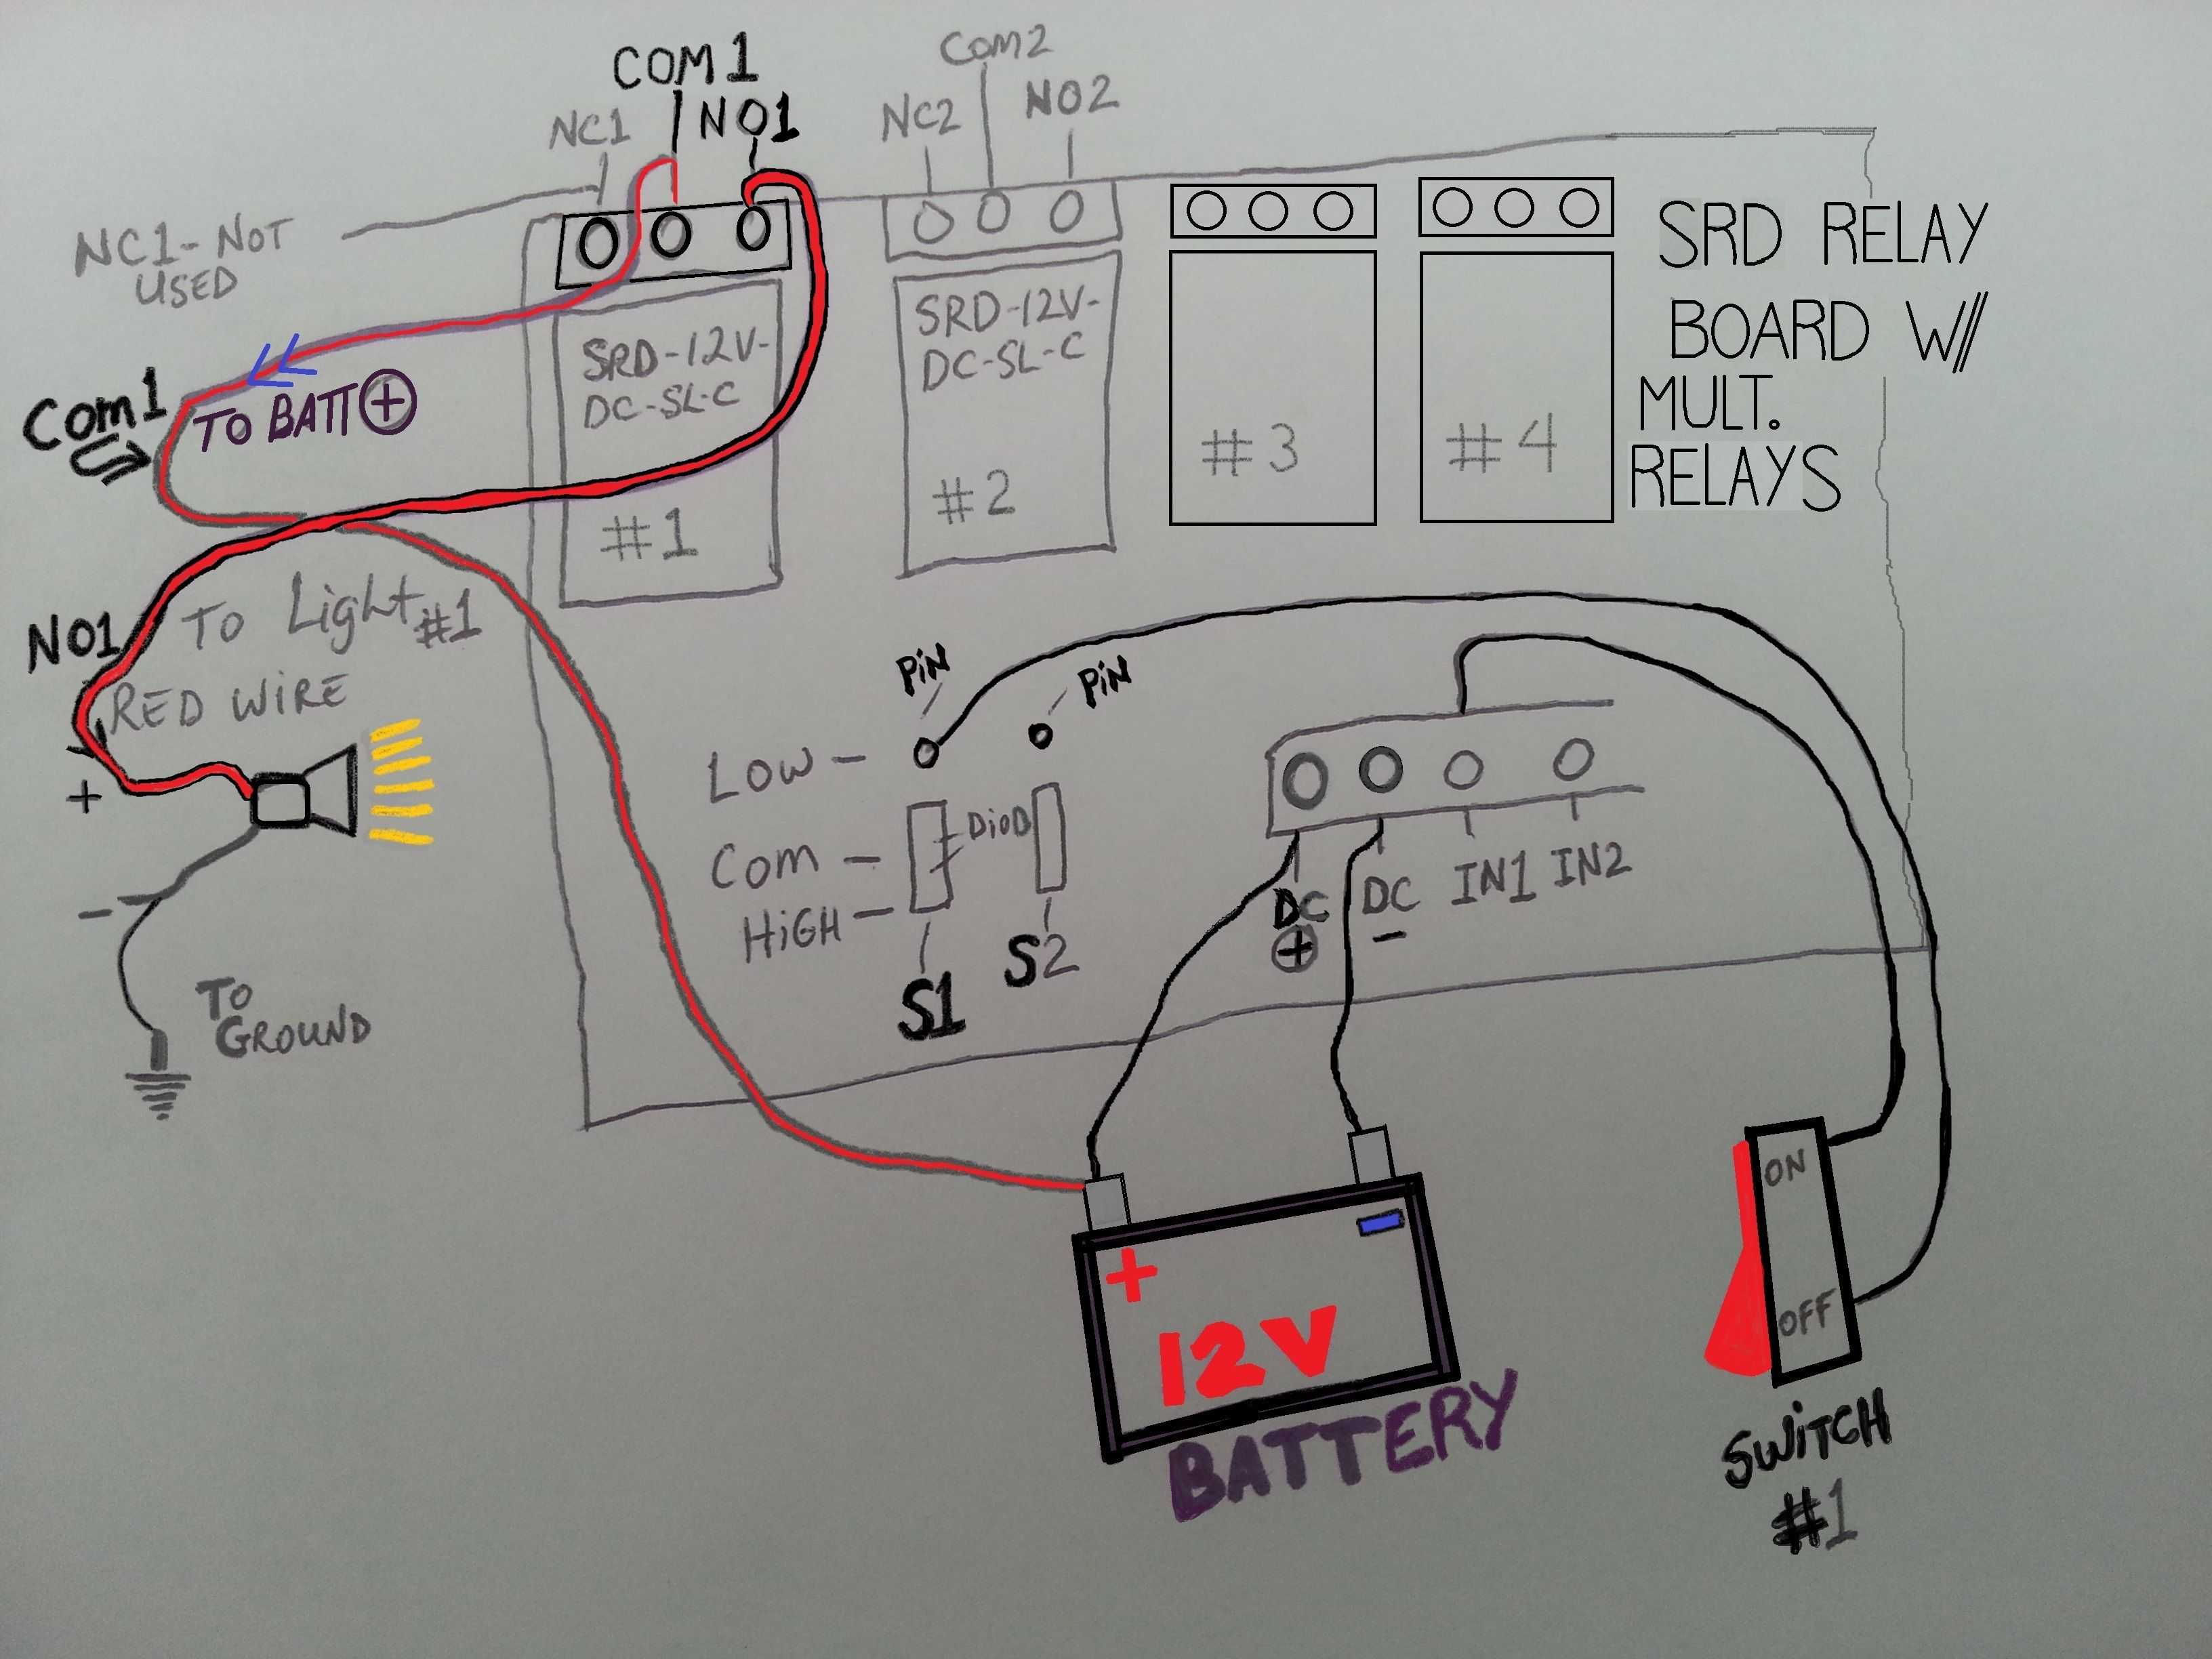 small resolution of wiring diagram for srd relay board multiple relays on one board